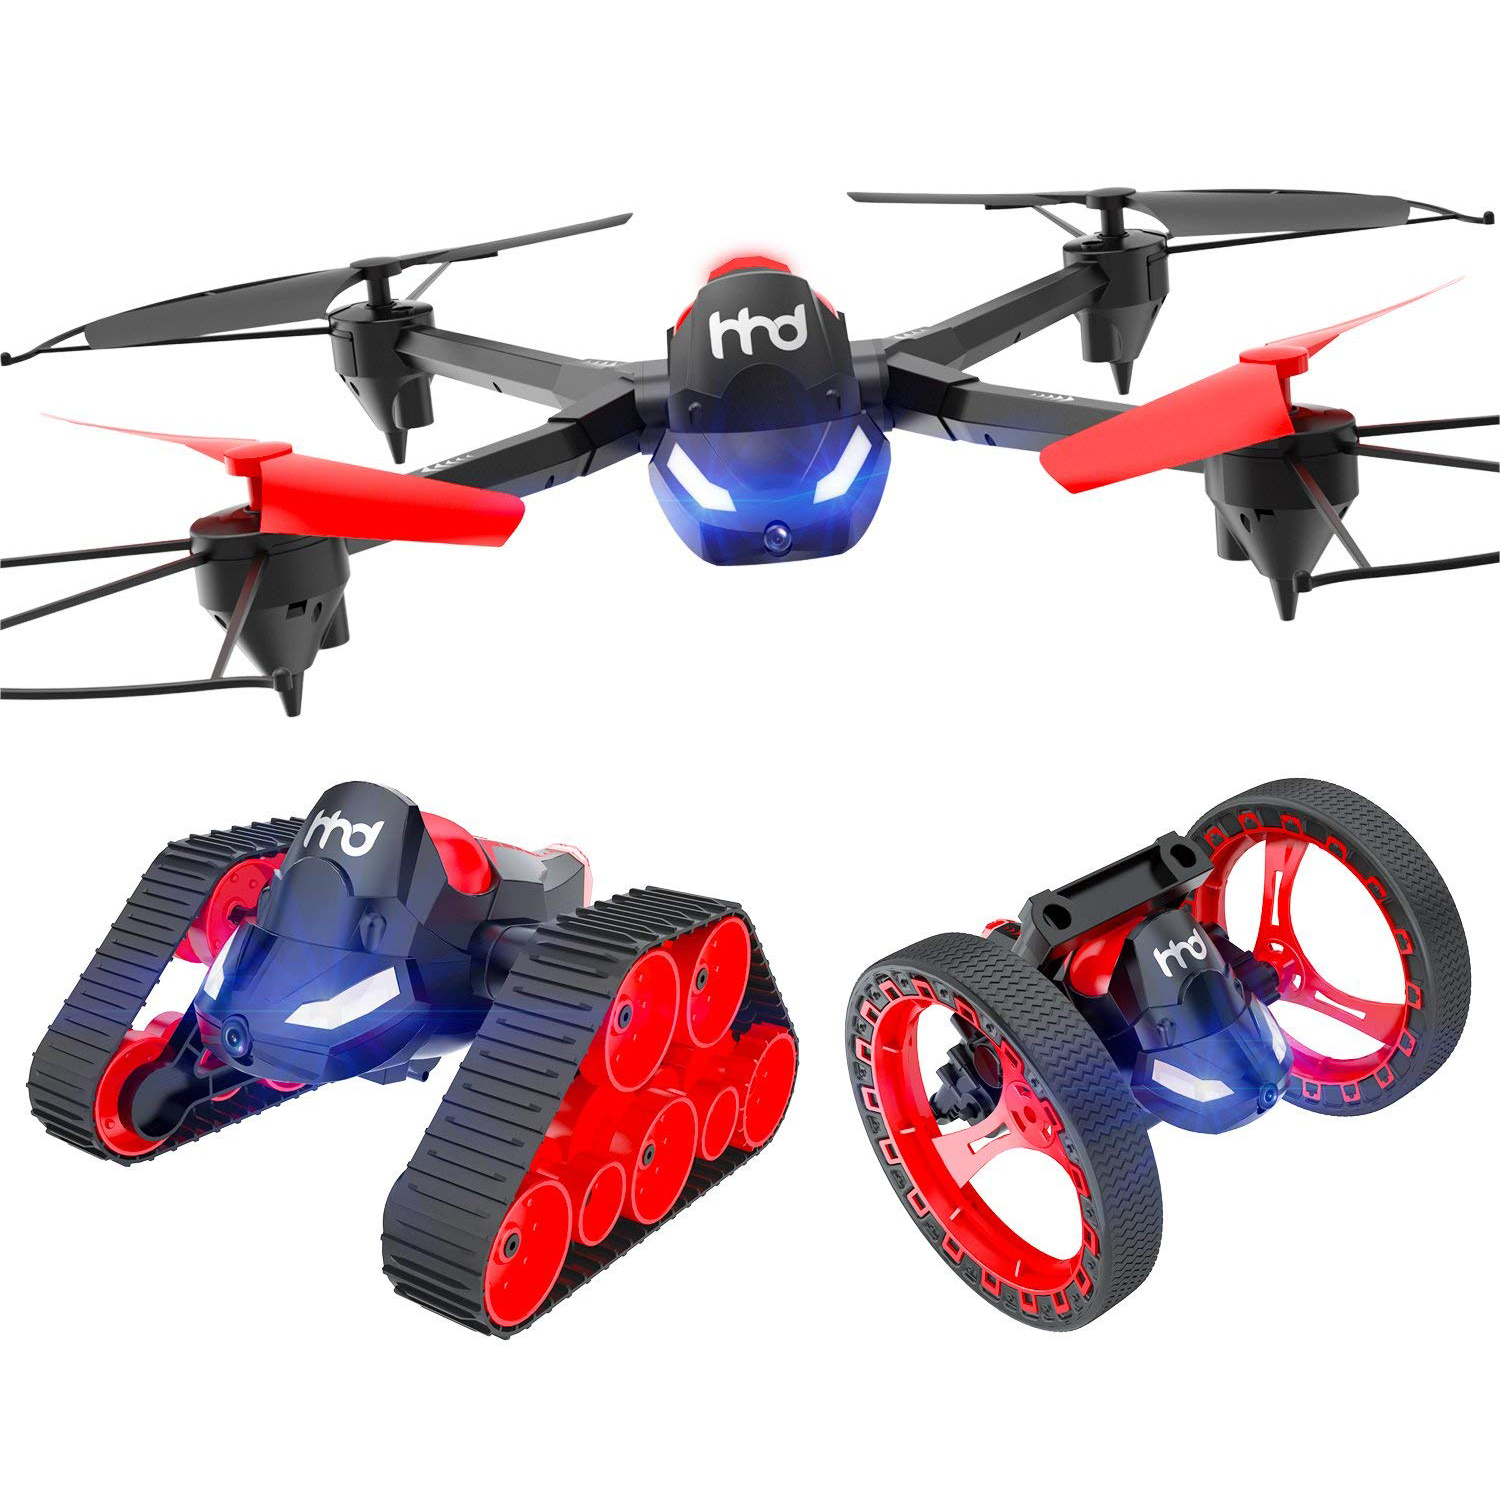 Three-in-one Mobile Phone WIFI Remote Control Aircraft Tank Bouncing Drone Four-axle Aircraft Model Helicopter Toy,Black 2018 new helicopter x5c aircraft four axes drone aircraft wifi real time remote control shipping from russia